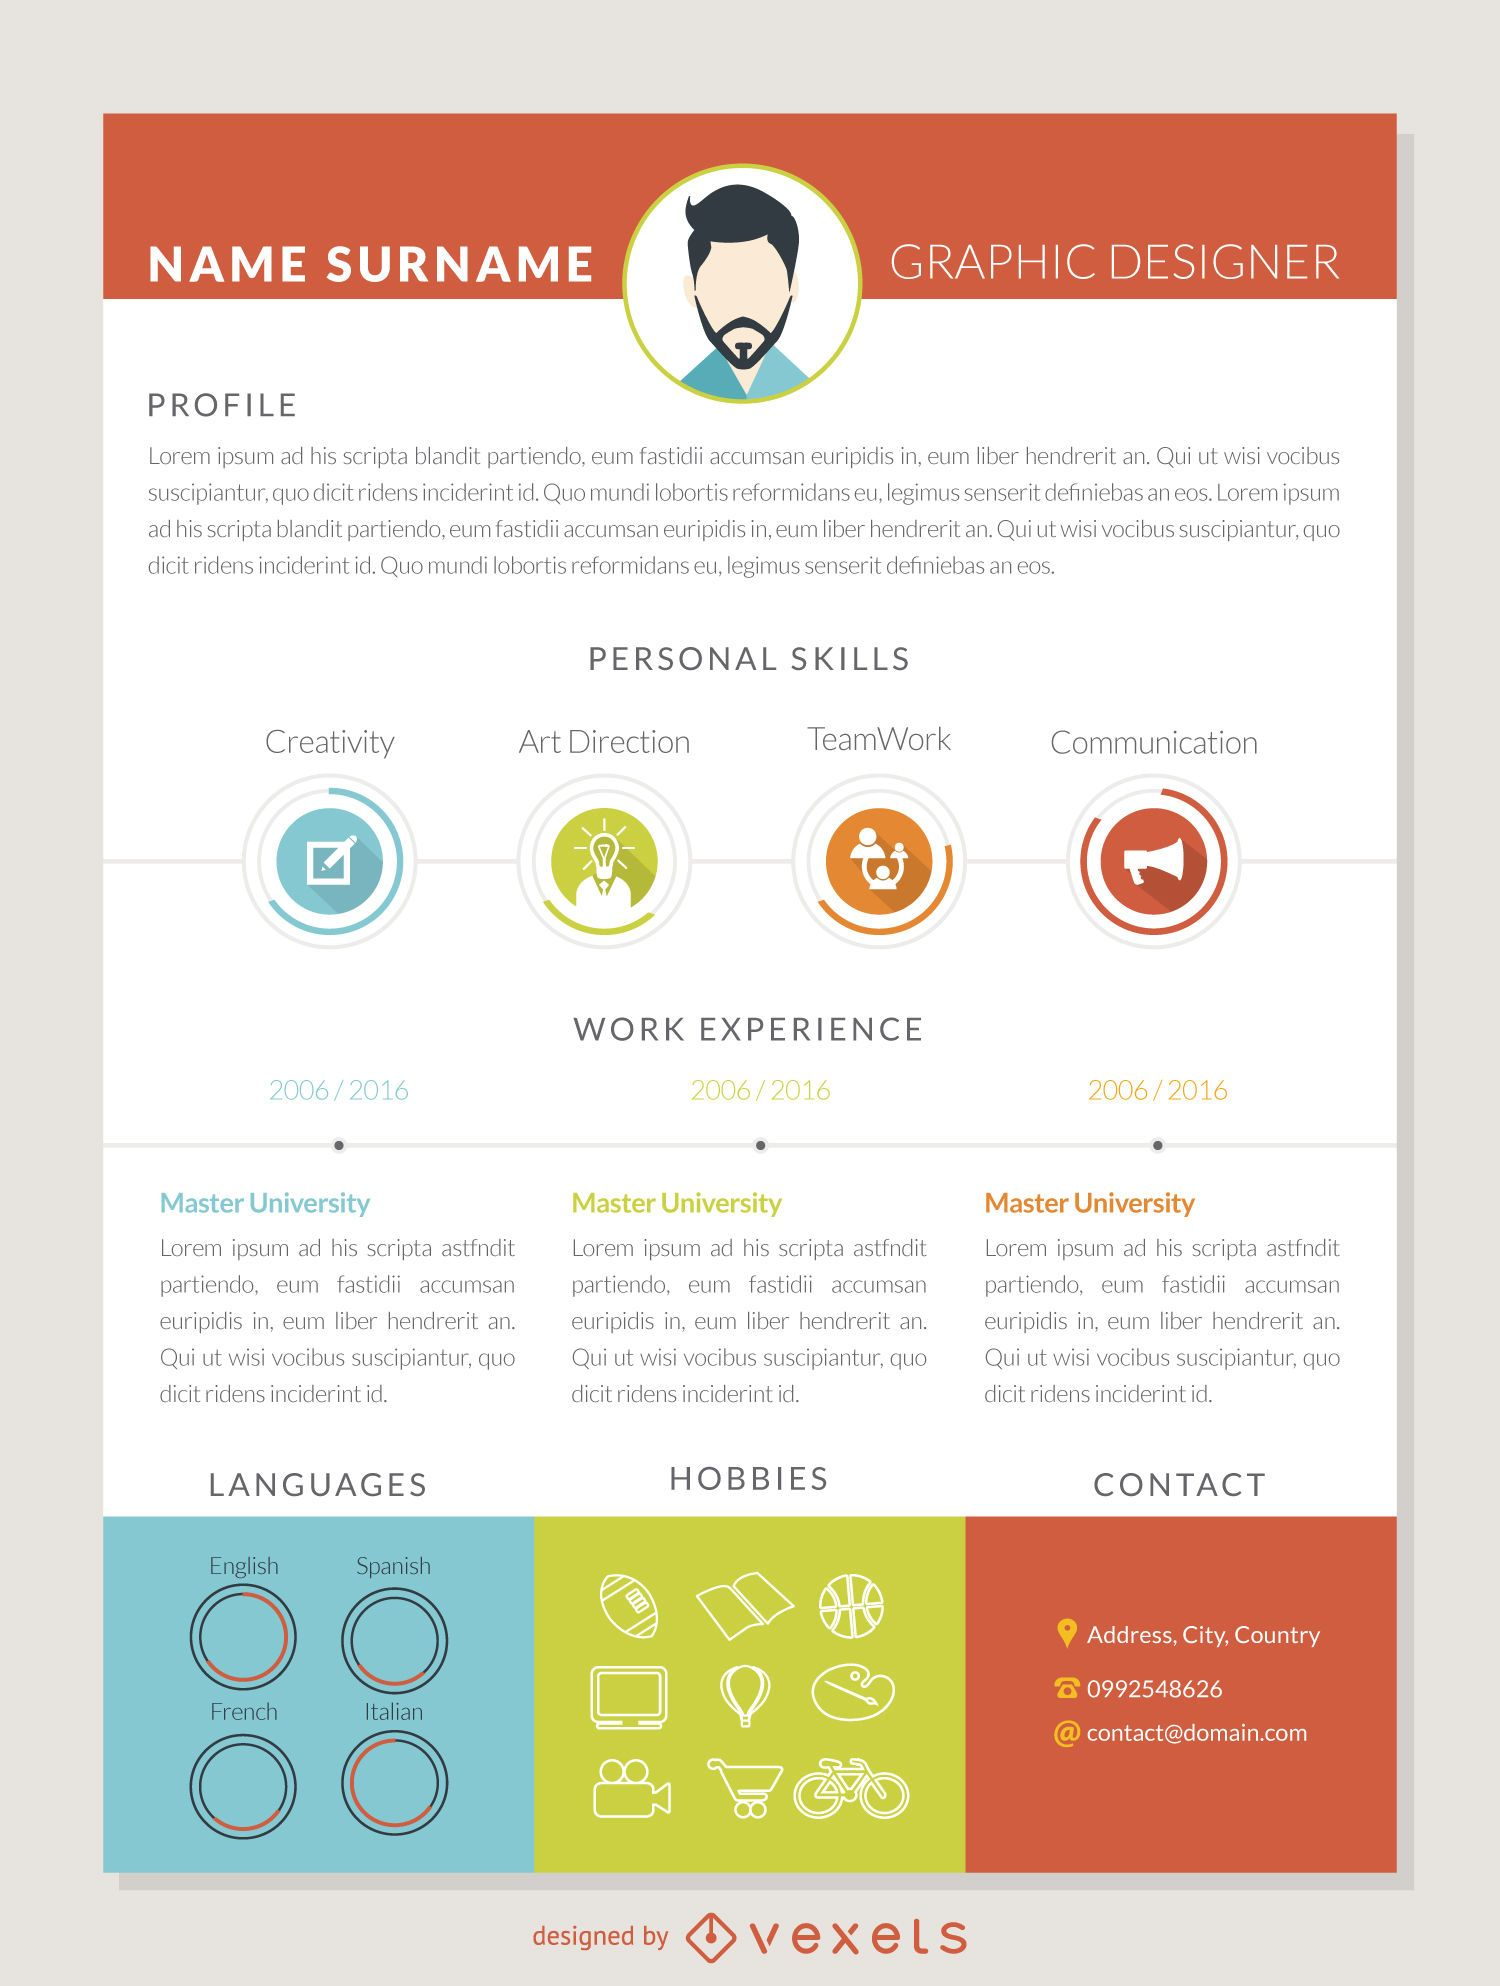 graphic designer resume cv vector graphic designer curriculum mockup template